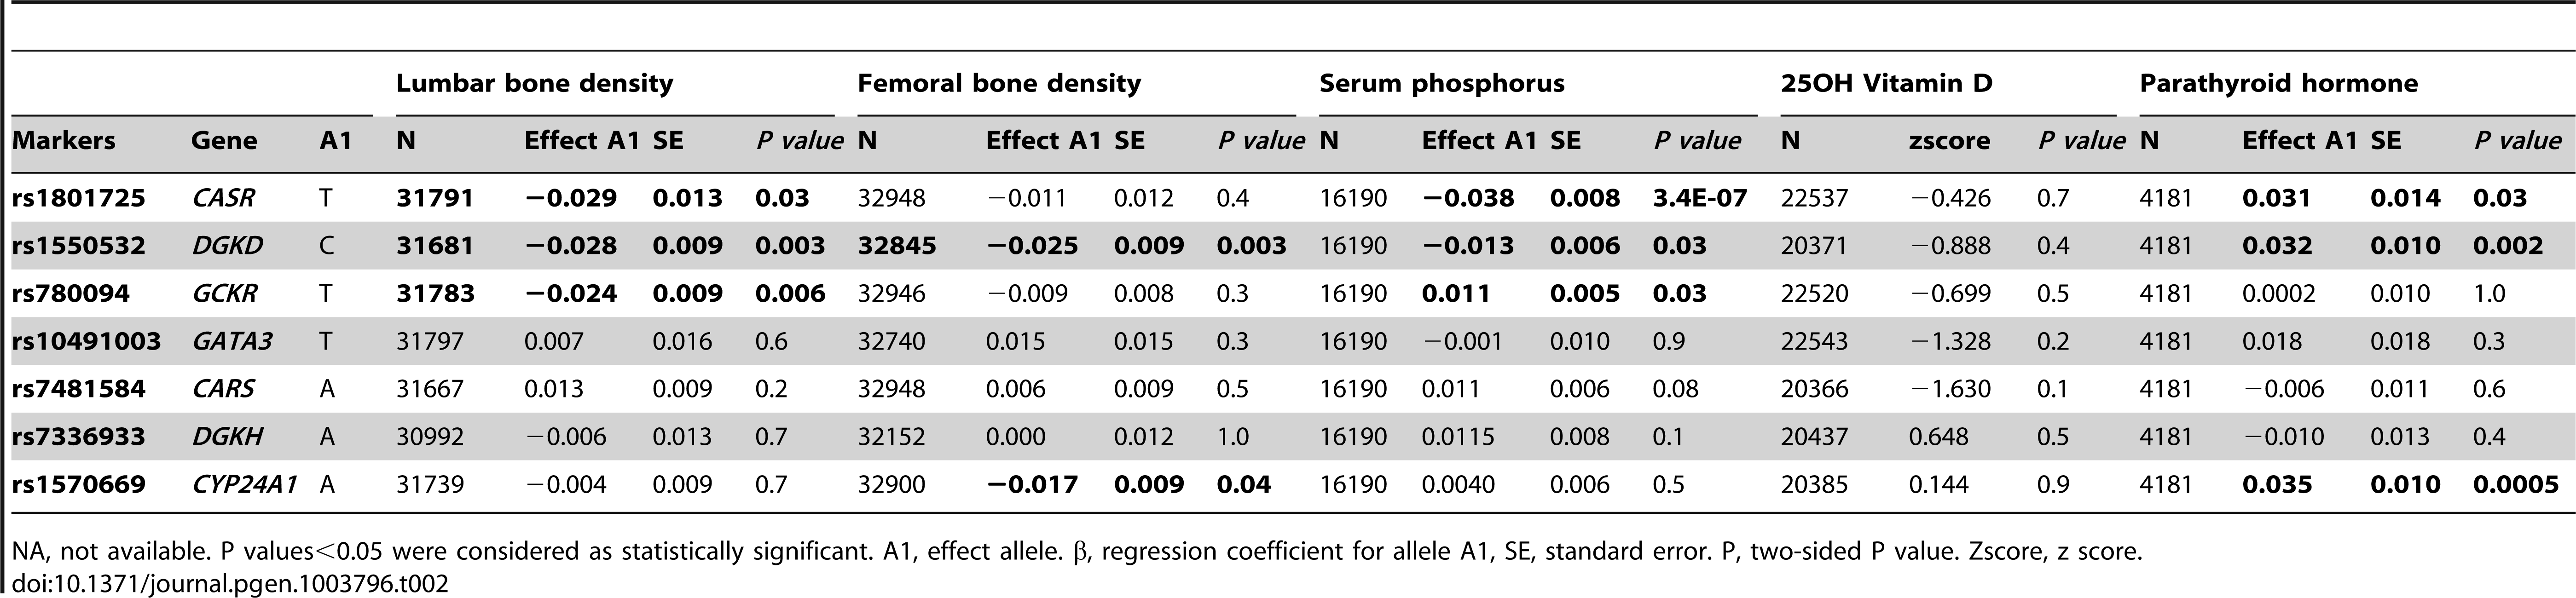 Look-ups of serum calcium loci with related phenotypes: bone mineral density in the GEFOS dataset <em class=&quot;ref&quot;>[6]</em> and endocrine phenotypes from the SHIP, SHIP Trend and SUNLIGHT <em class=&quot;ref&quot;>[7]</em> datasets.